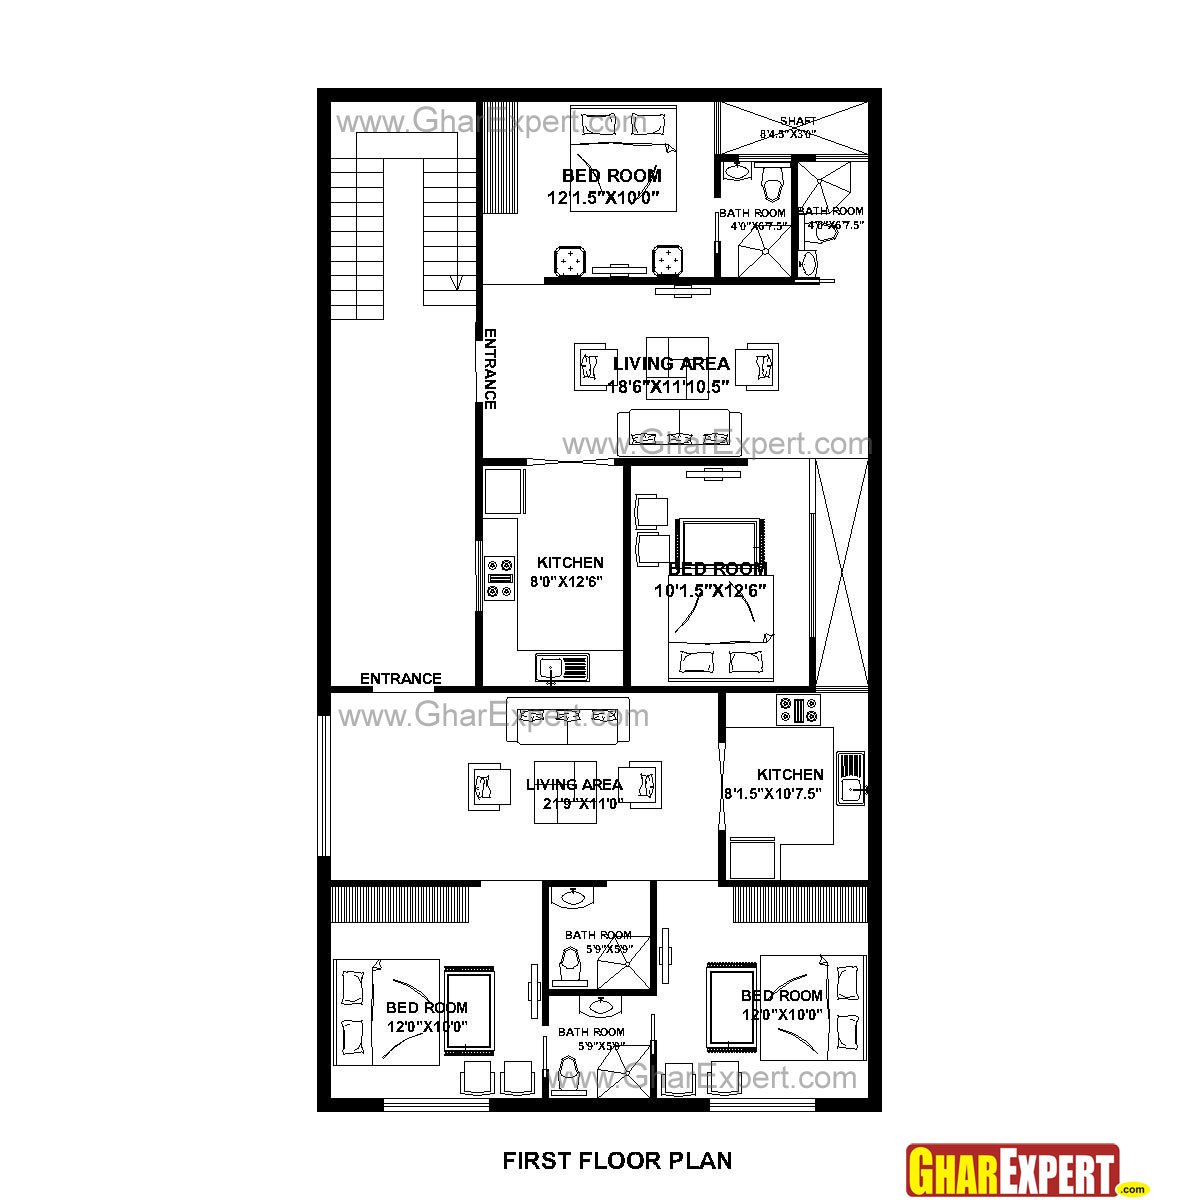 House Plan for 32 Feet by 58 Feet plot (Plot Size 206 Square Yards - GharExpert.com